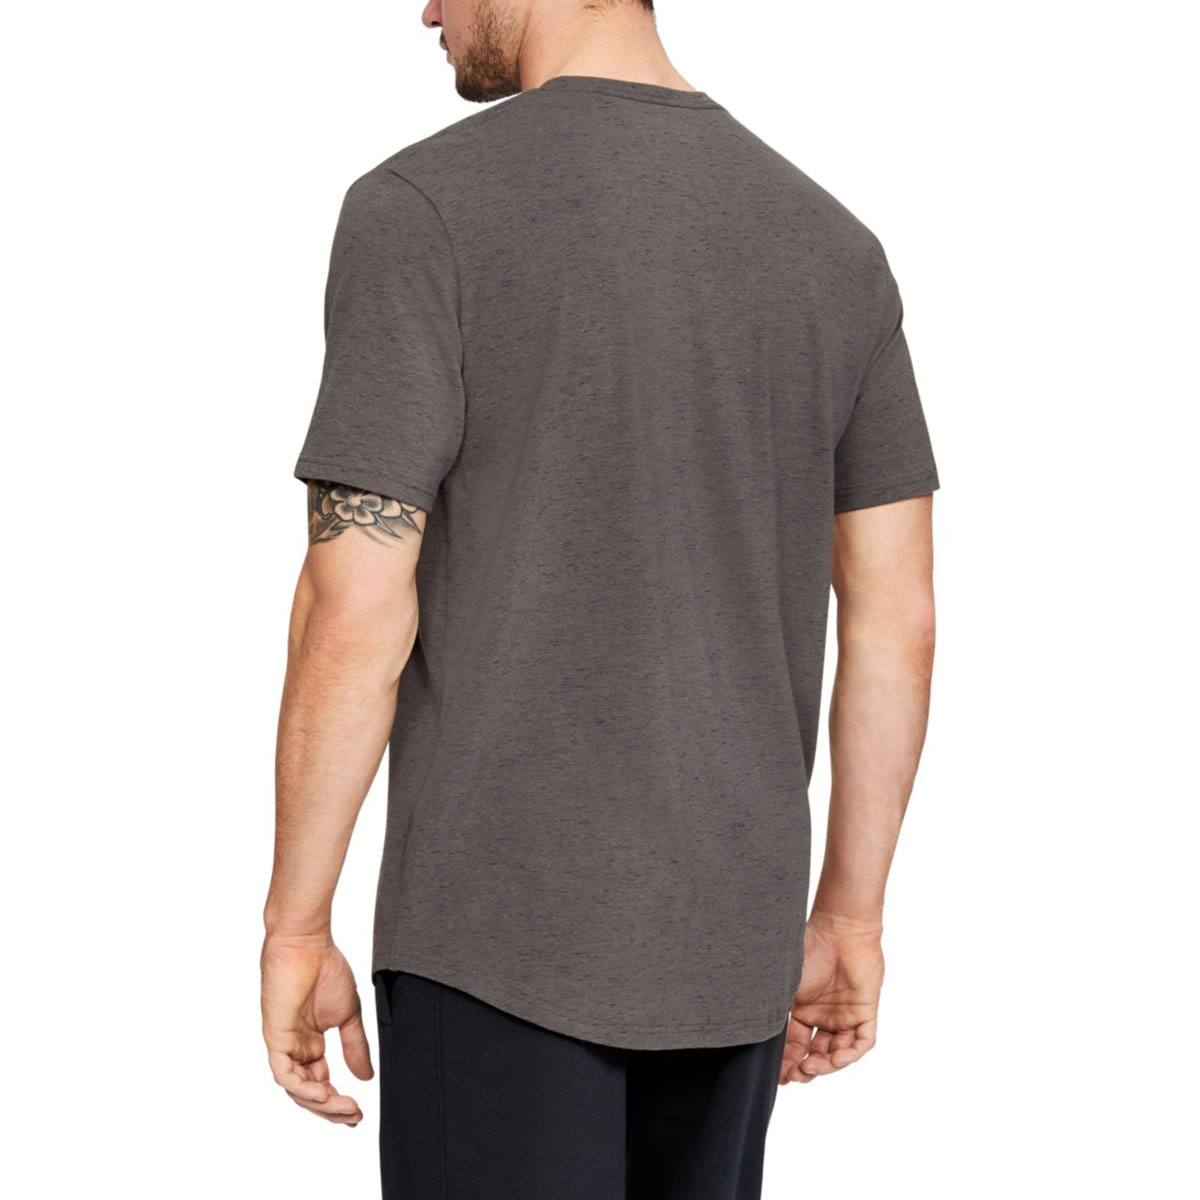 Under-Armour-Mens-UA-Sportstyle-SS-Moisture-Wicking-T-Shirt-39-OFF-RRP thumbnail 7